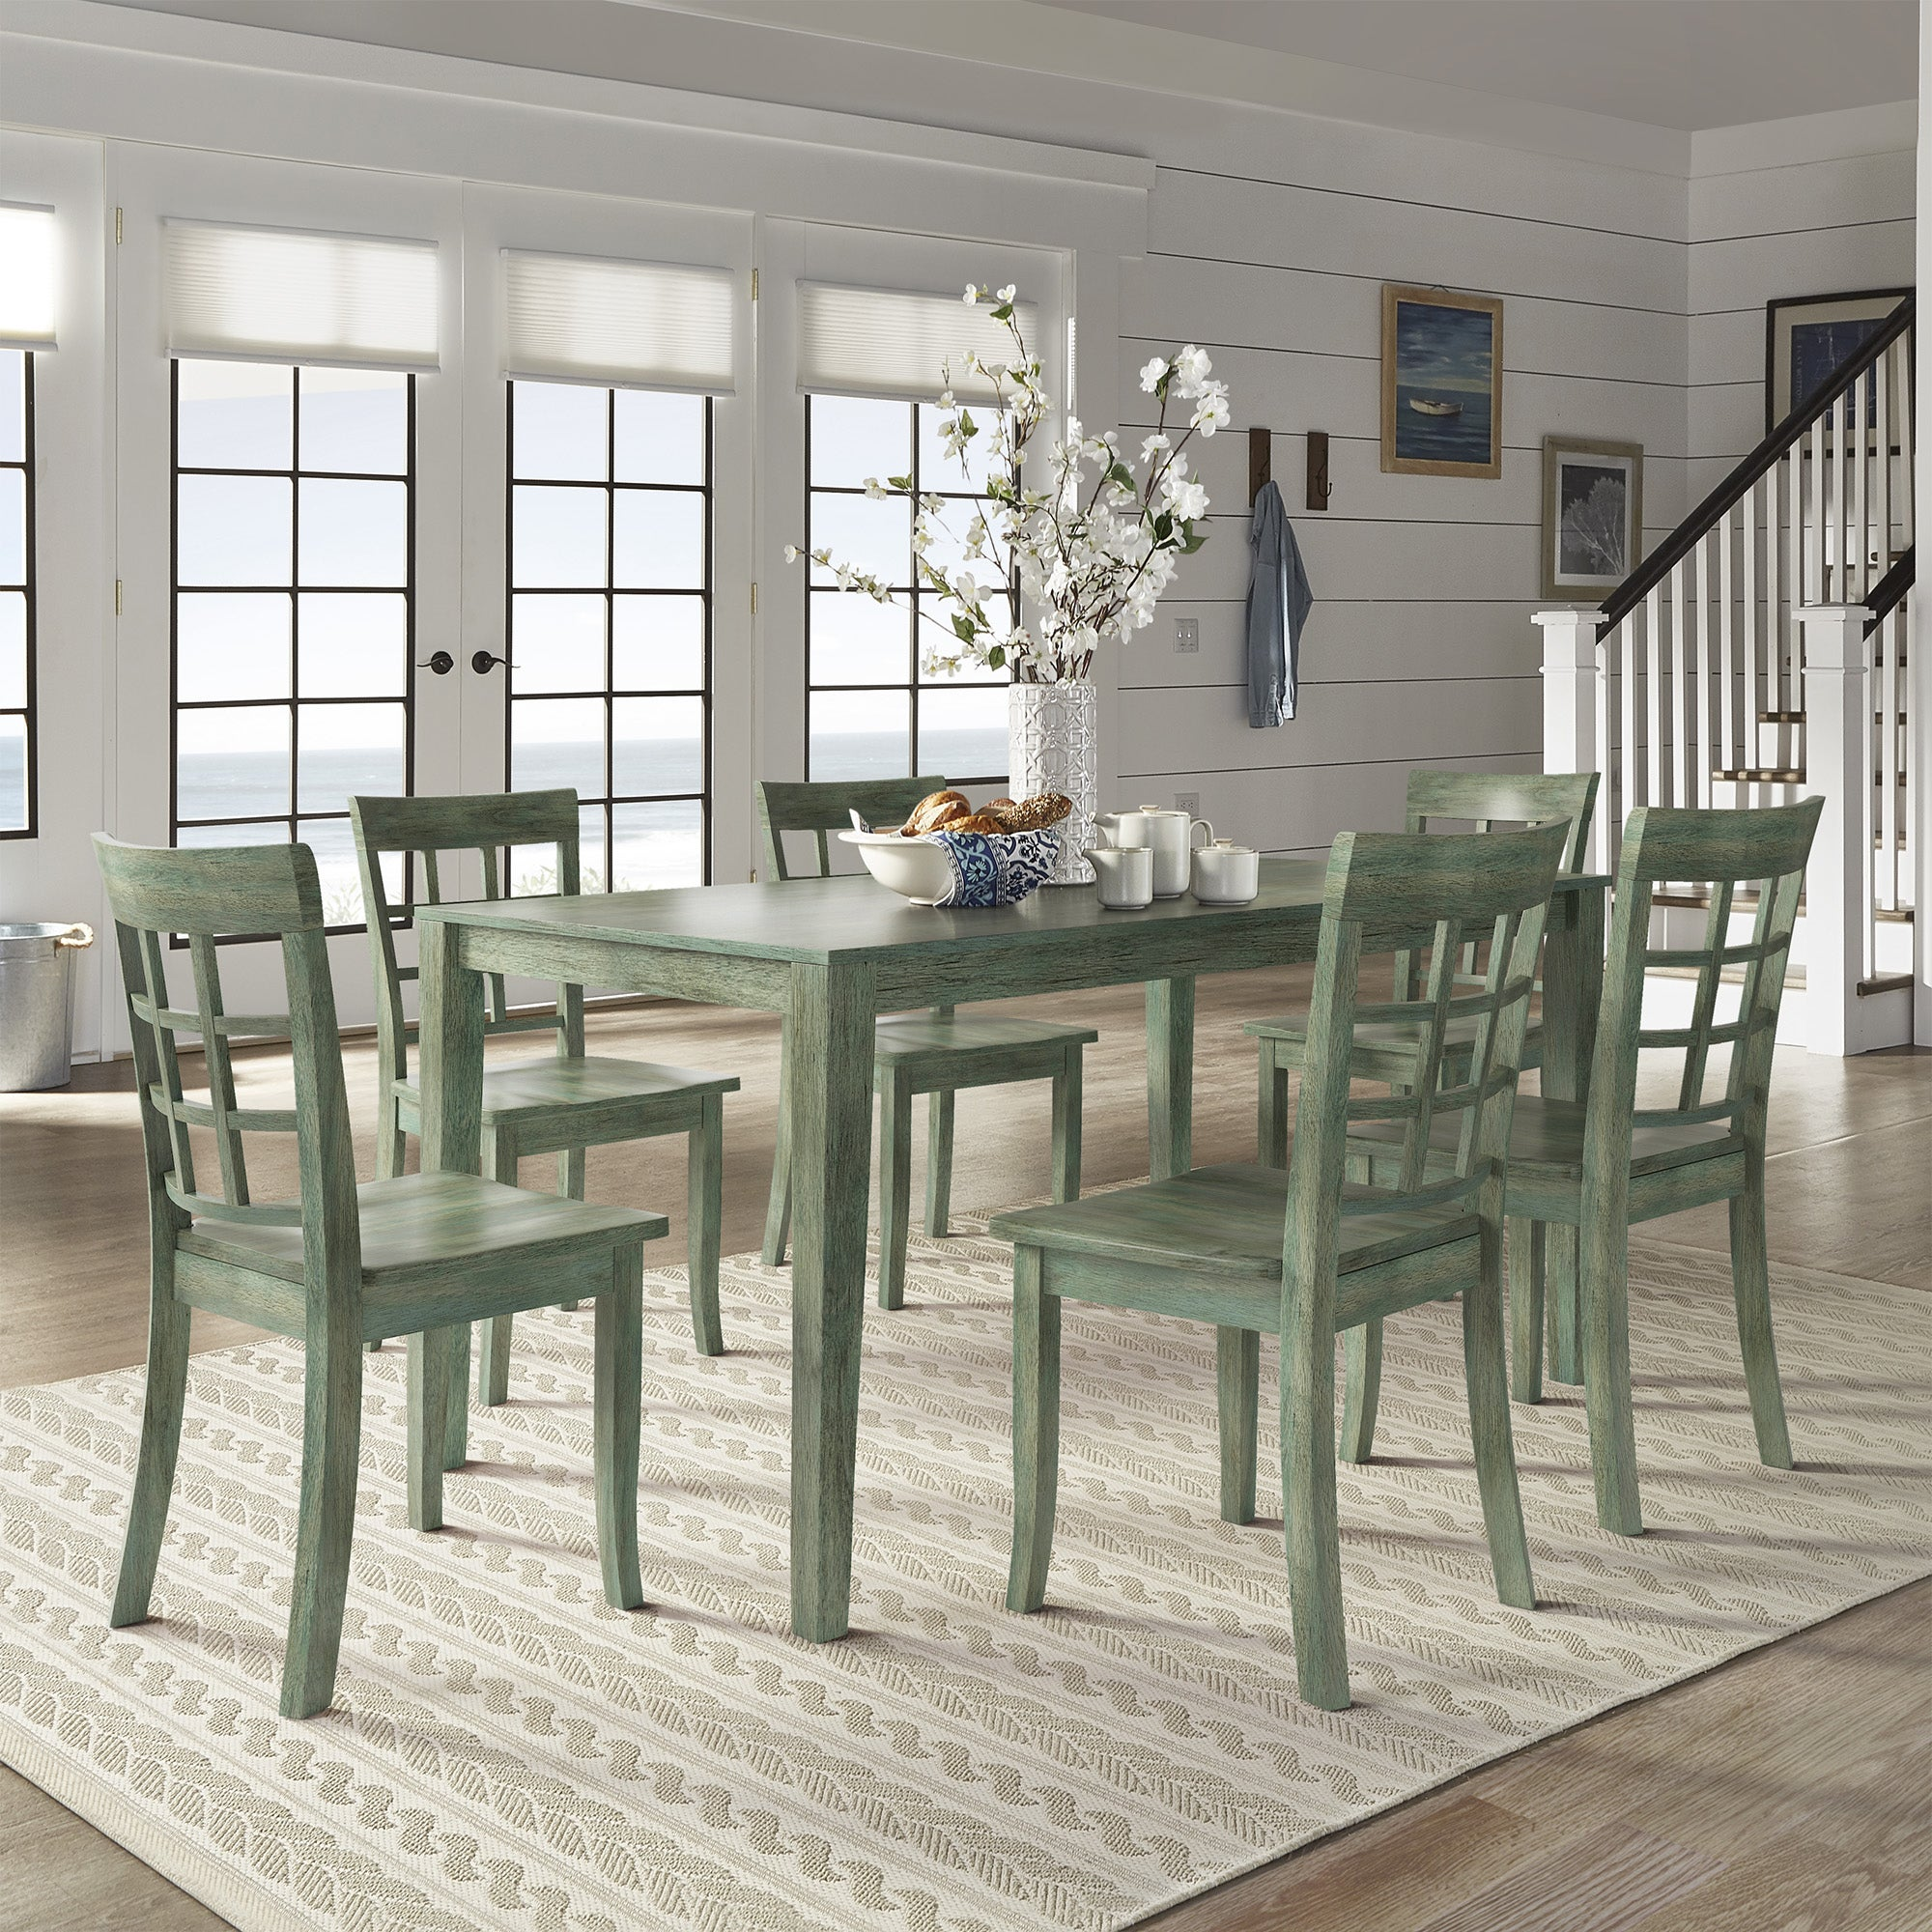 Wilmington Ii 60 Inch Rectangular Antique Sage Green Dining Set By Inspire Q Classic On Sale Overstock 18048901